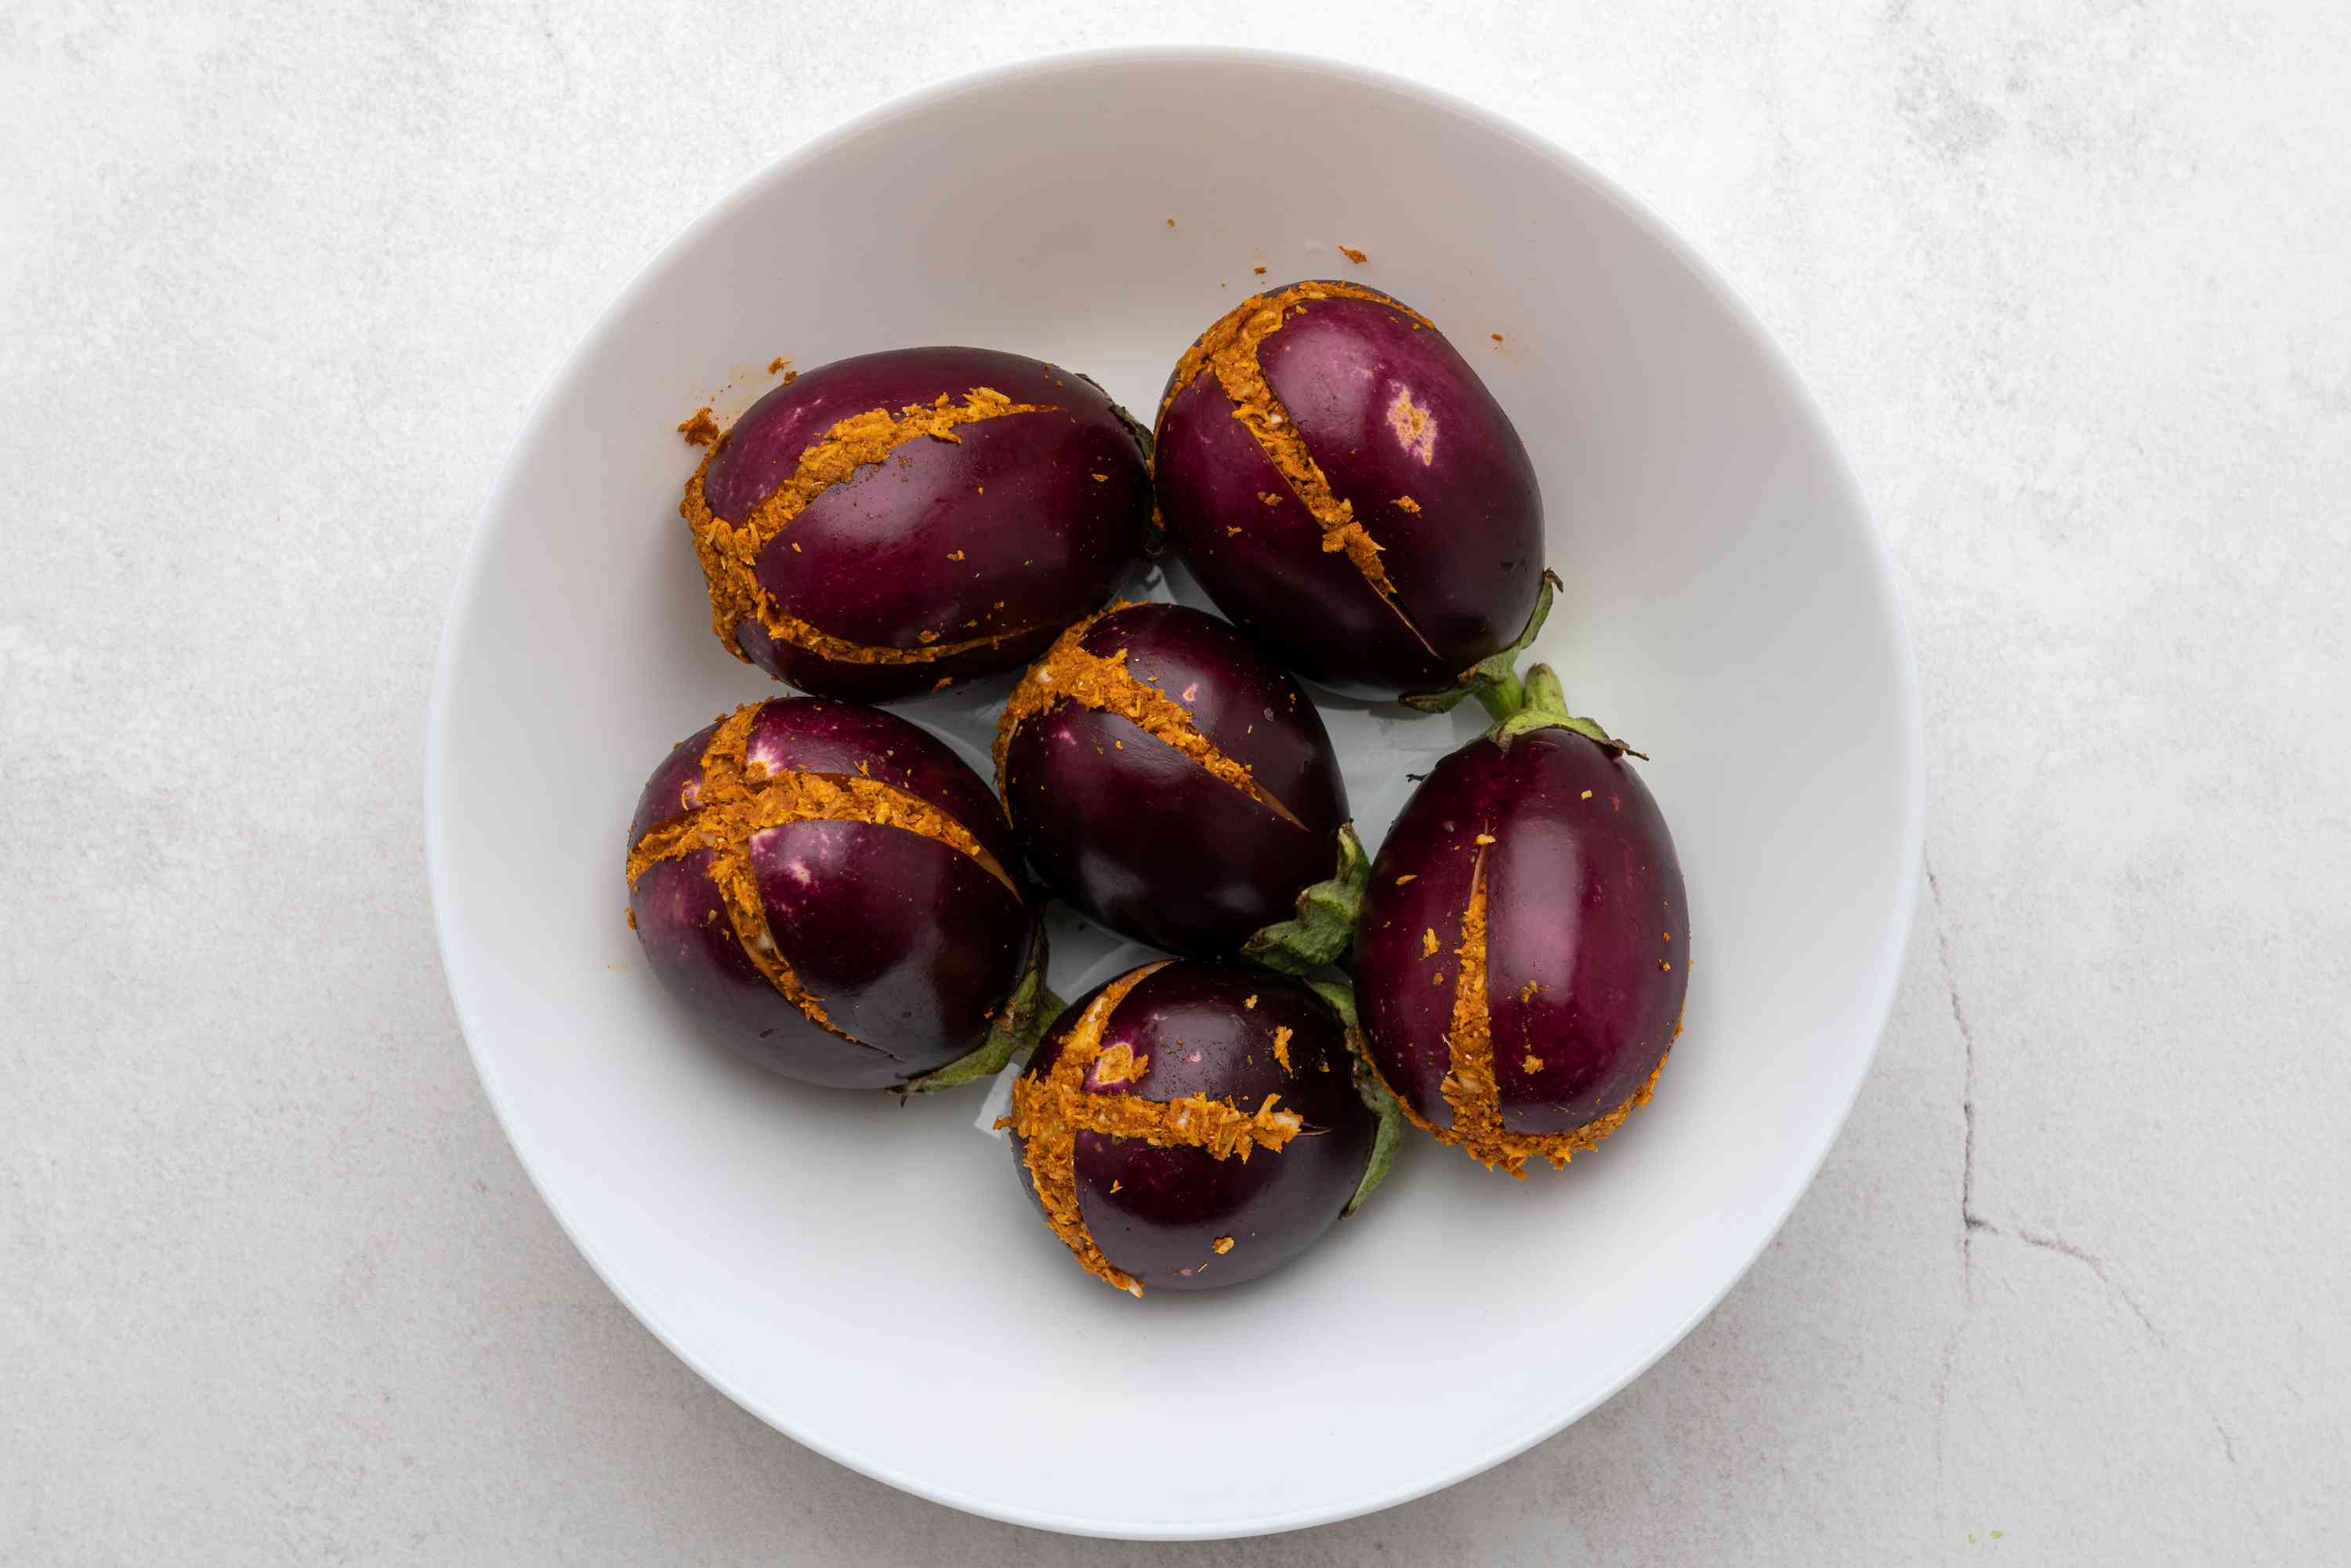 Fill the slits in the eggplants with this spice paste